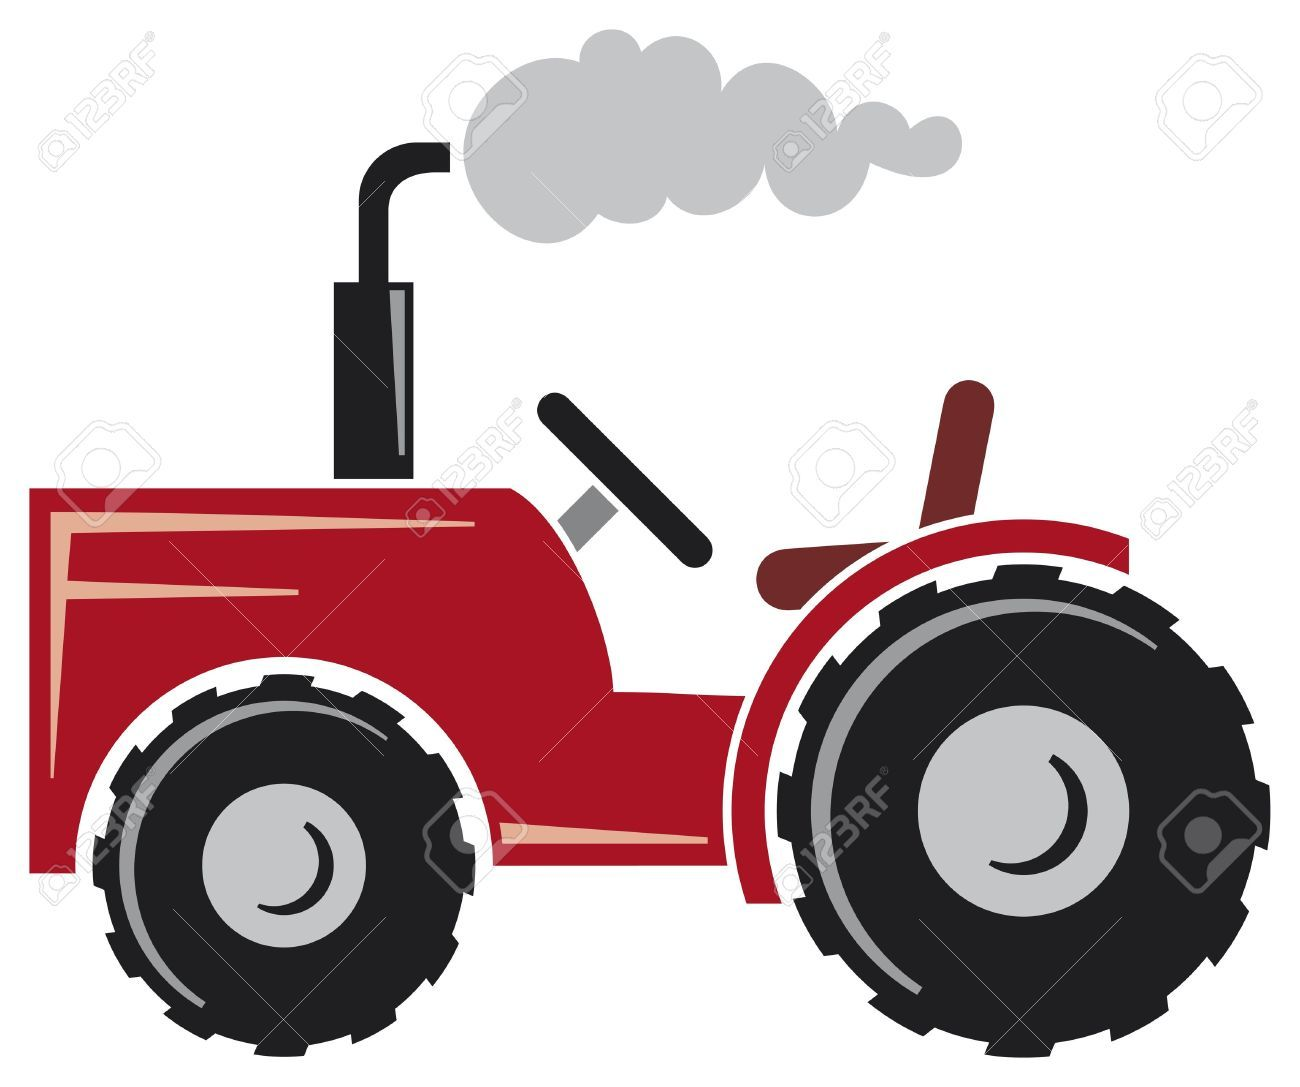 Tractor Cartoon Stock Vector Illustration And Royalty Free Tractor